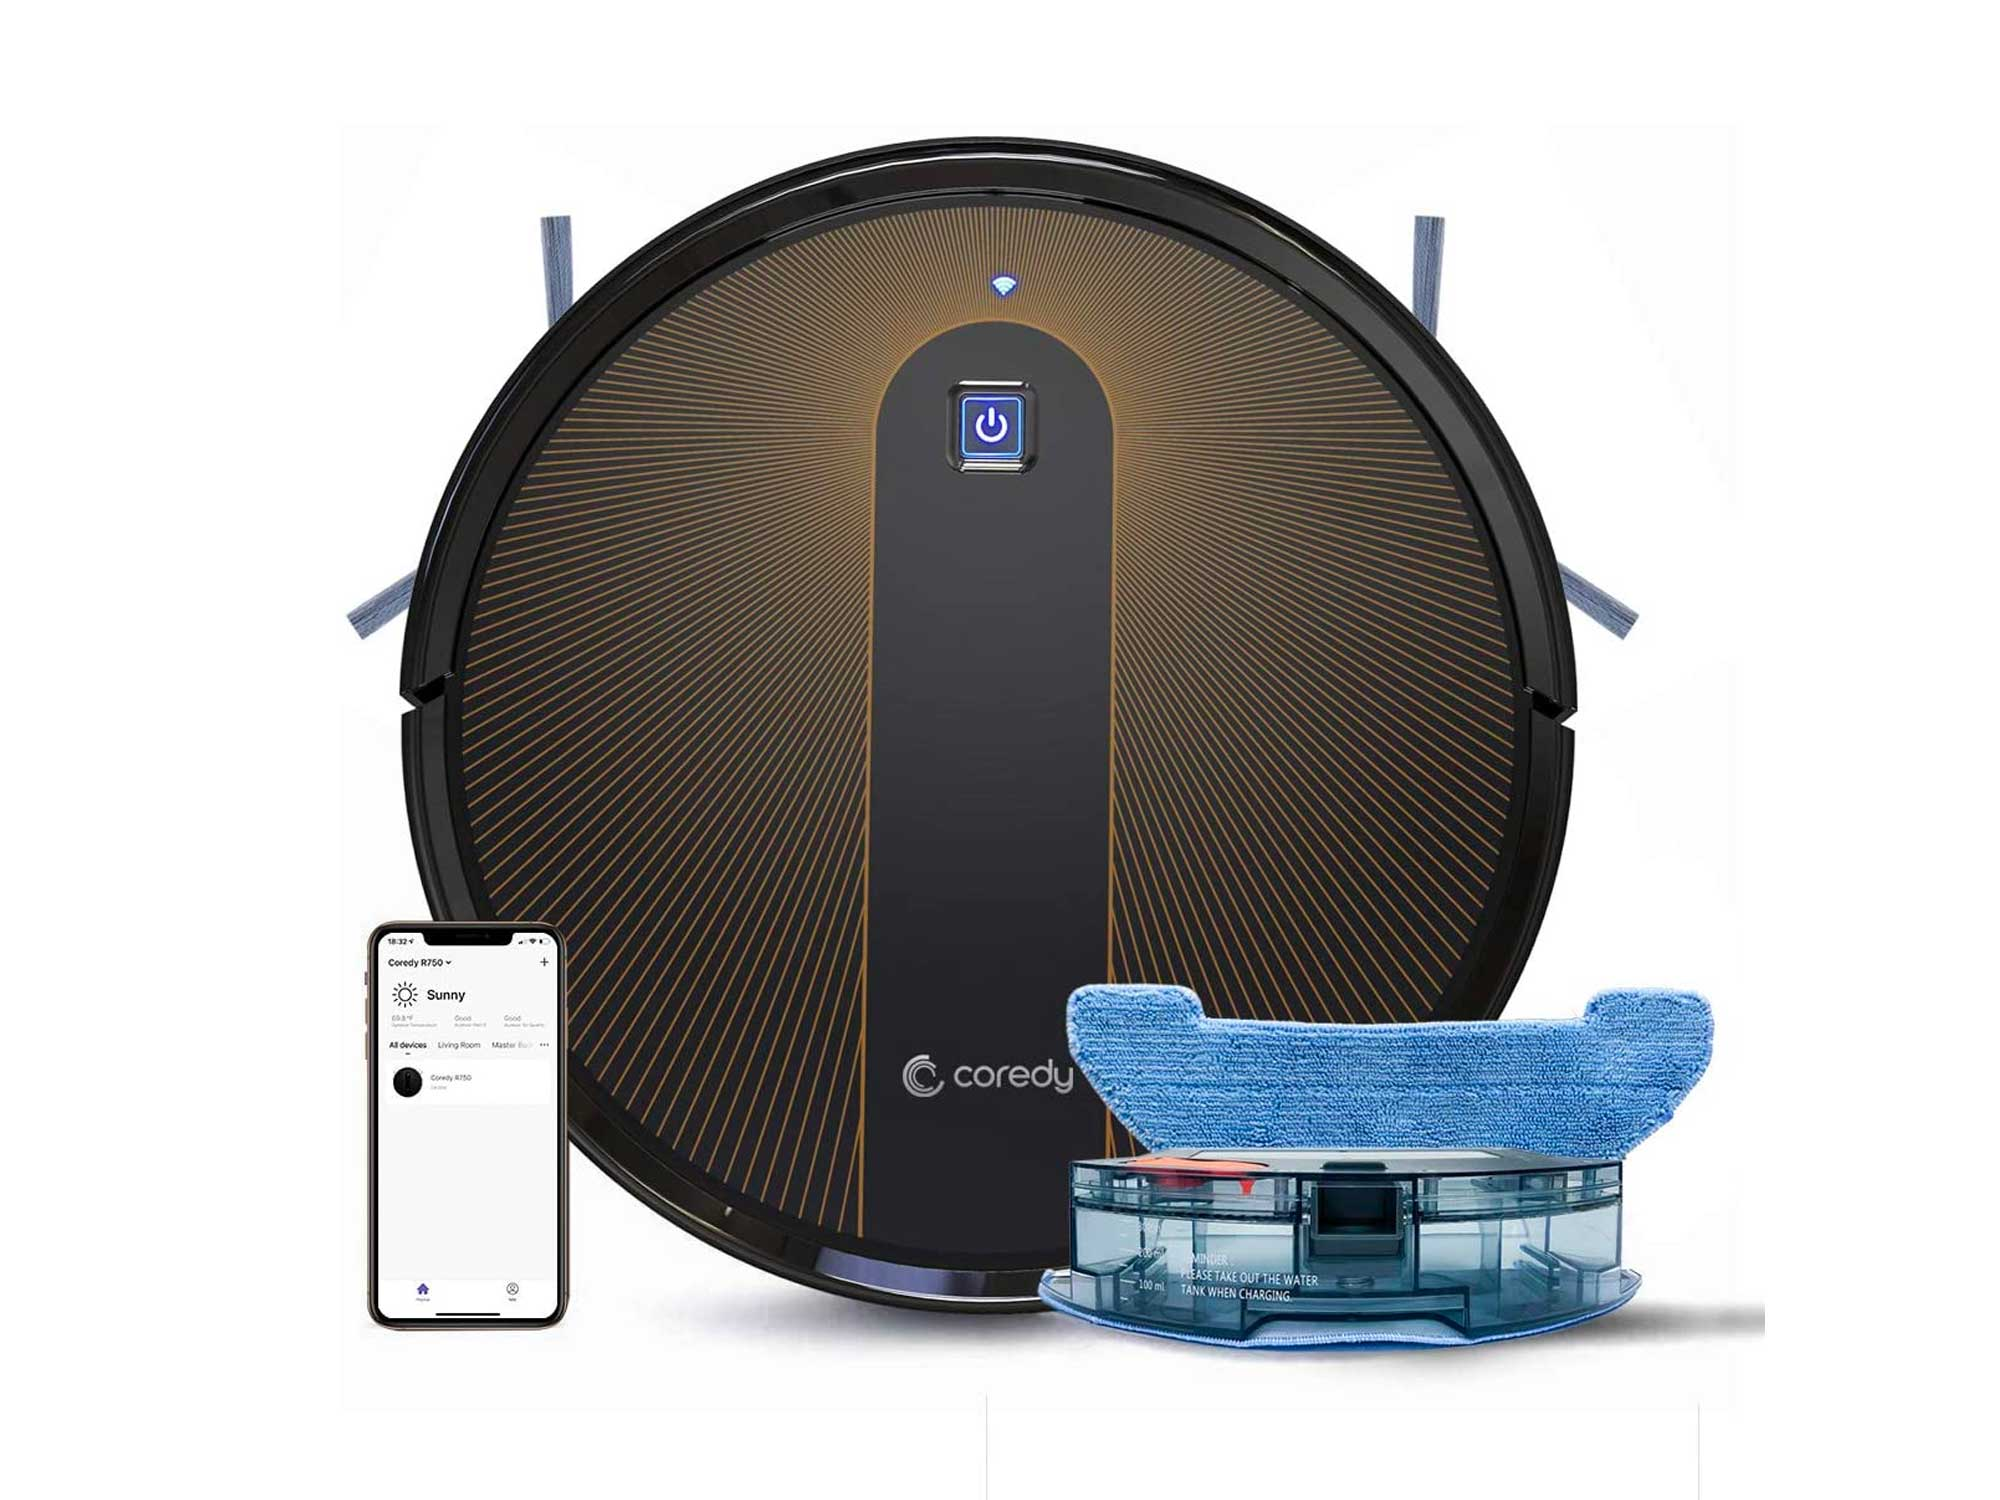 Coredy R750 Robot Vacuum Cleaner, 3-in-1 Vacuuming Sweeping and Mopping, Wi-Fi, App Controls, 2000pa Strong Suction, Slim, Quiet, Self-Charging Robotic Hoover Cleaner, Cleans Hard Floor to Carpet